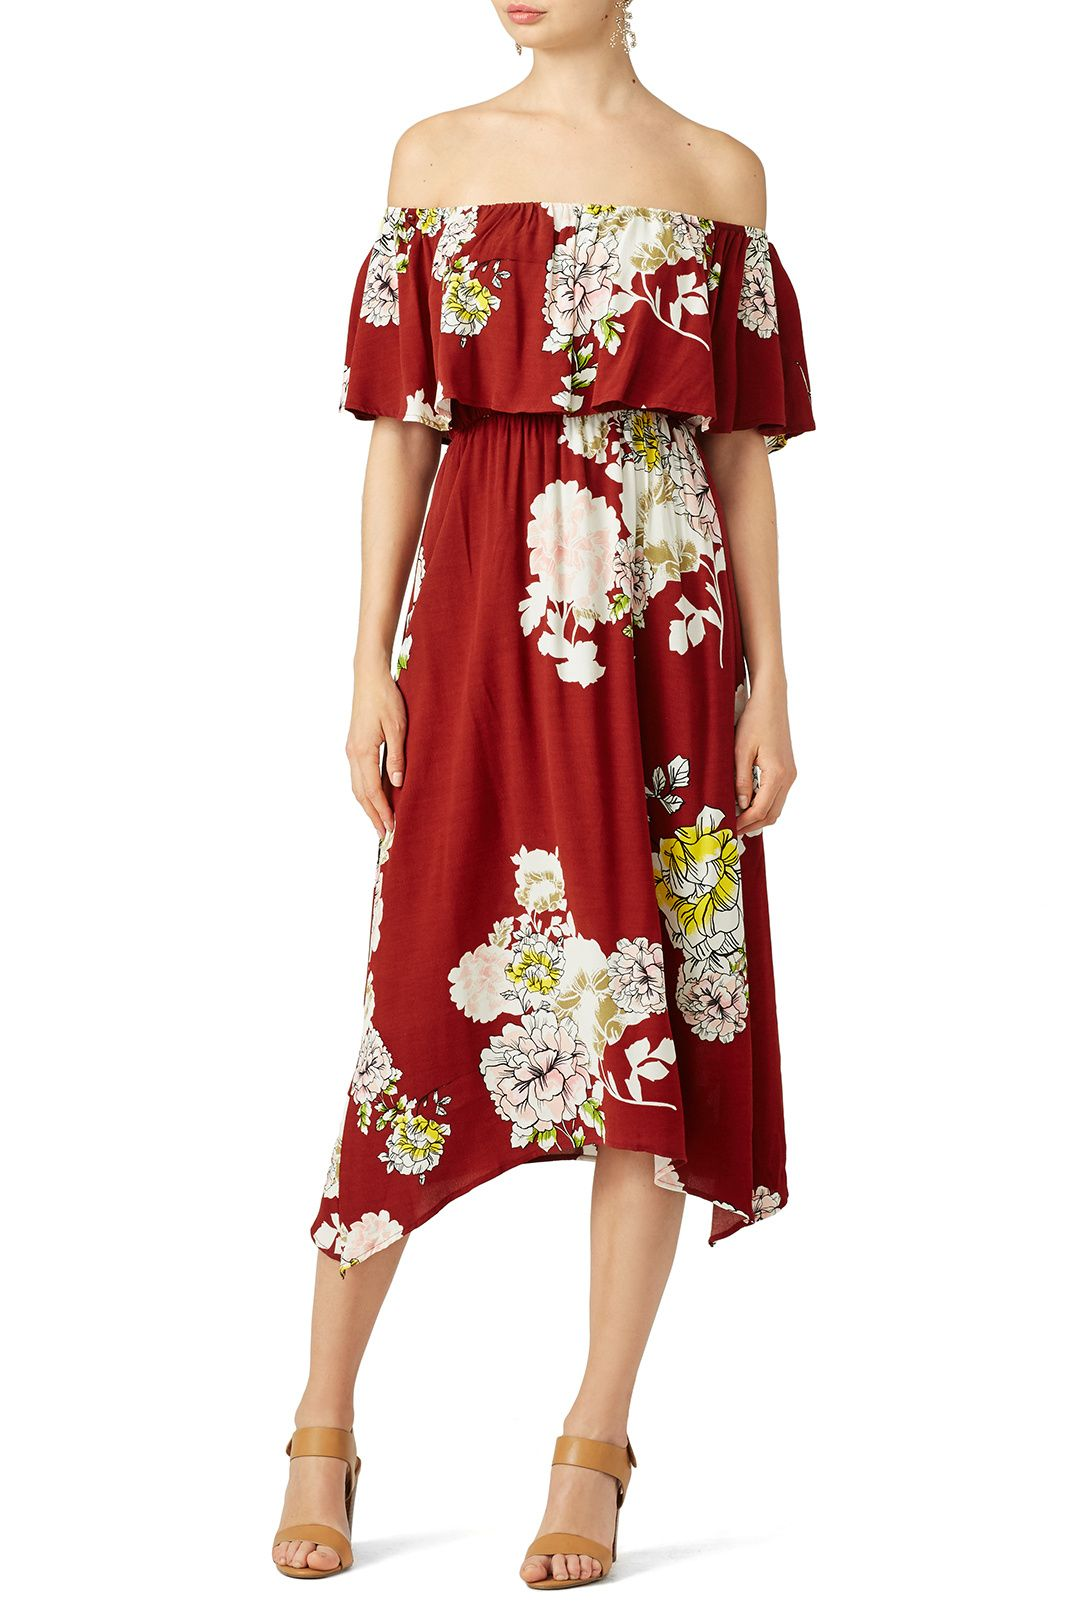 0cc314f52e0d Rent Red Rust Floral Off Shoulder Dress by ASTR for  30 only at Rent the  Runway.